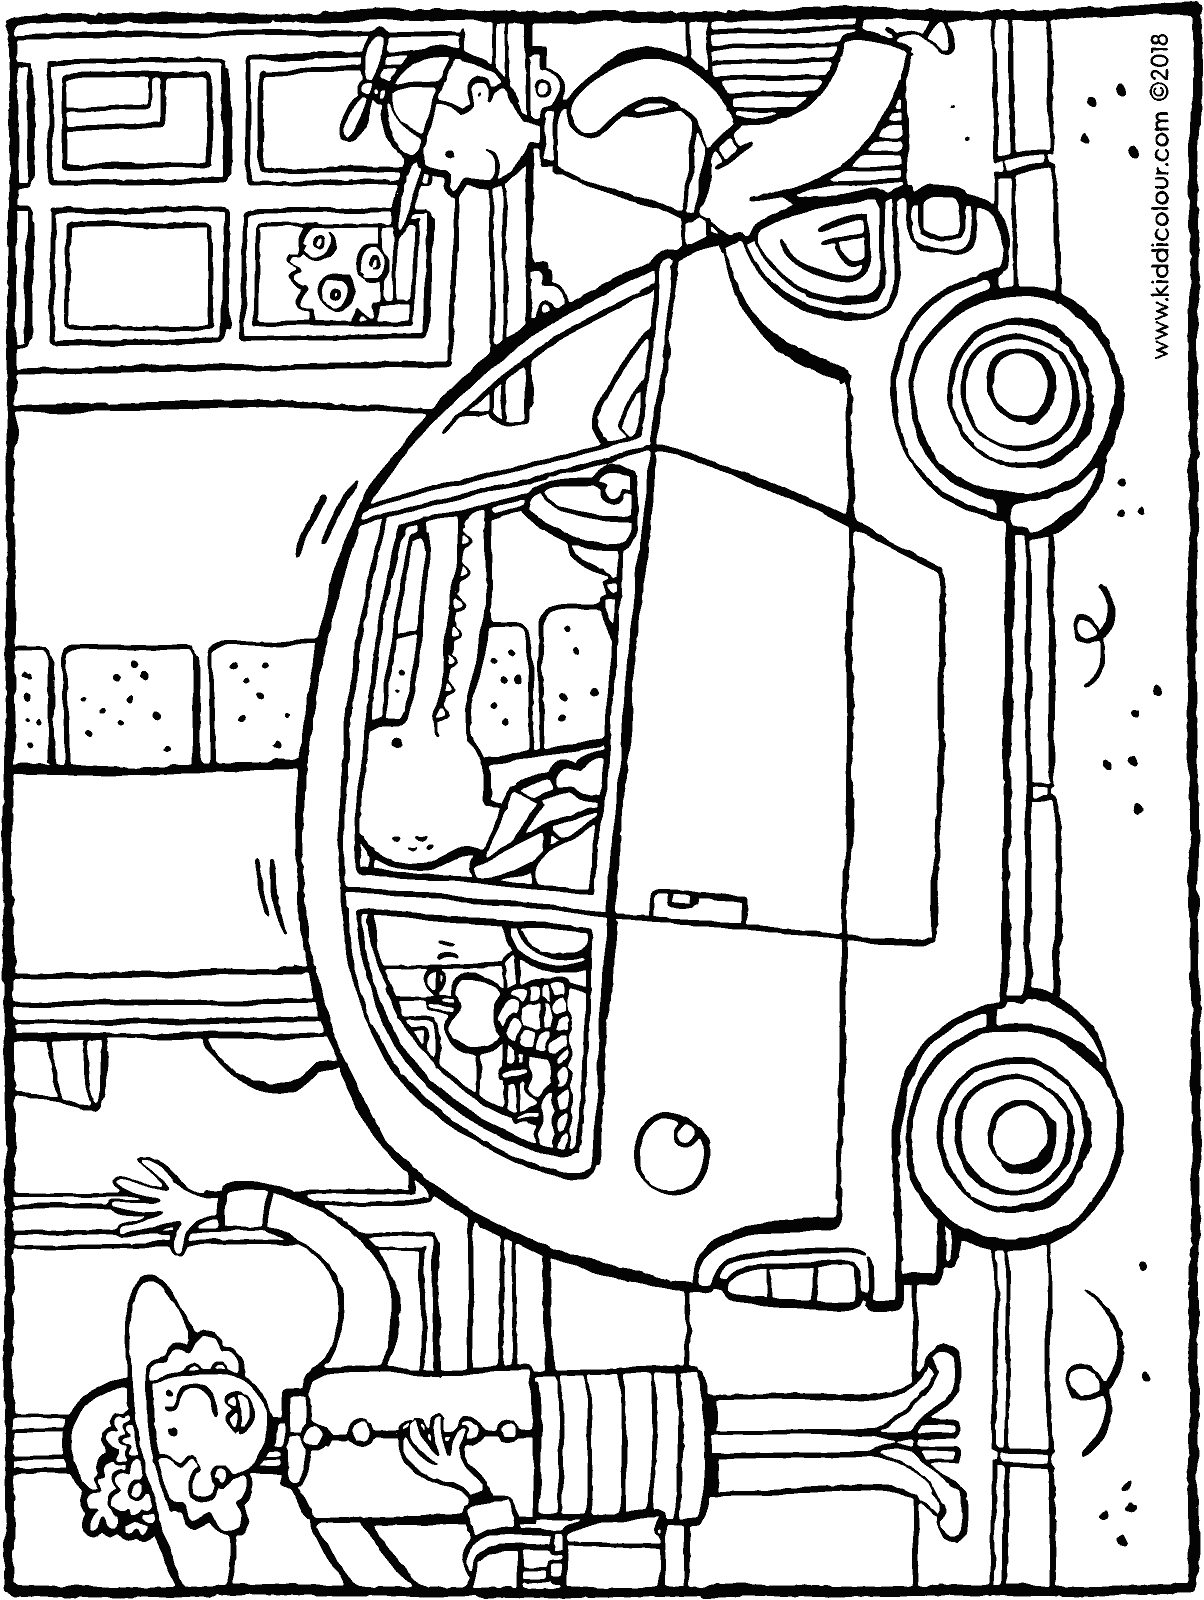 a small city car colouring page drawing picture 01H